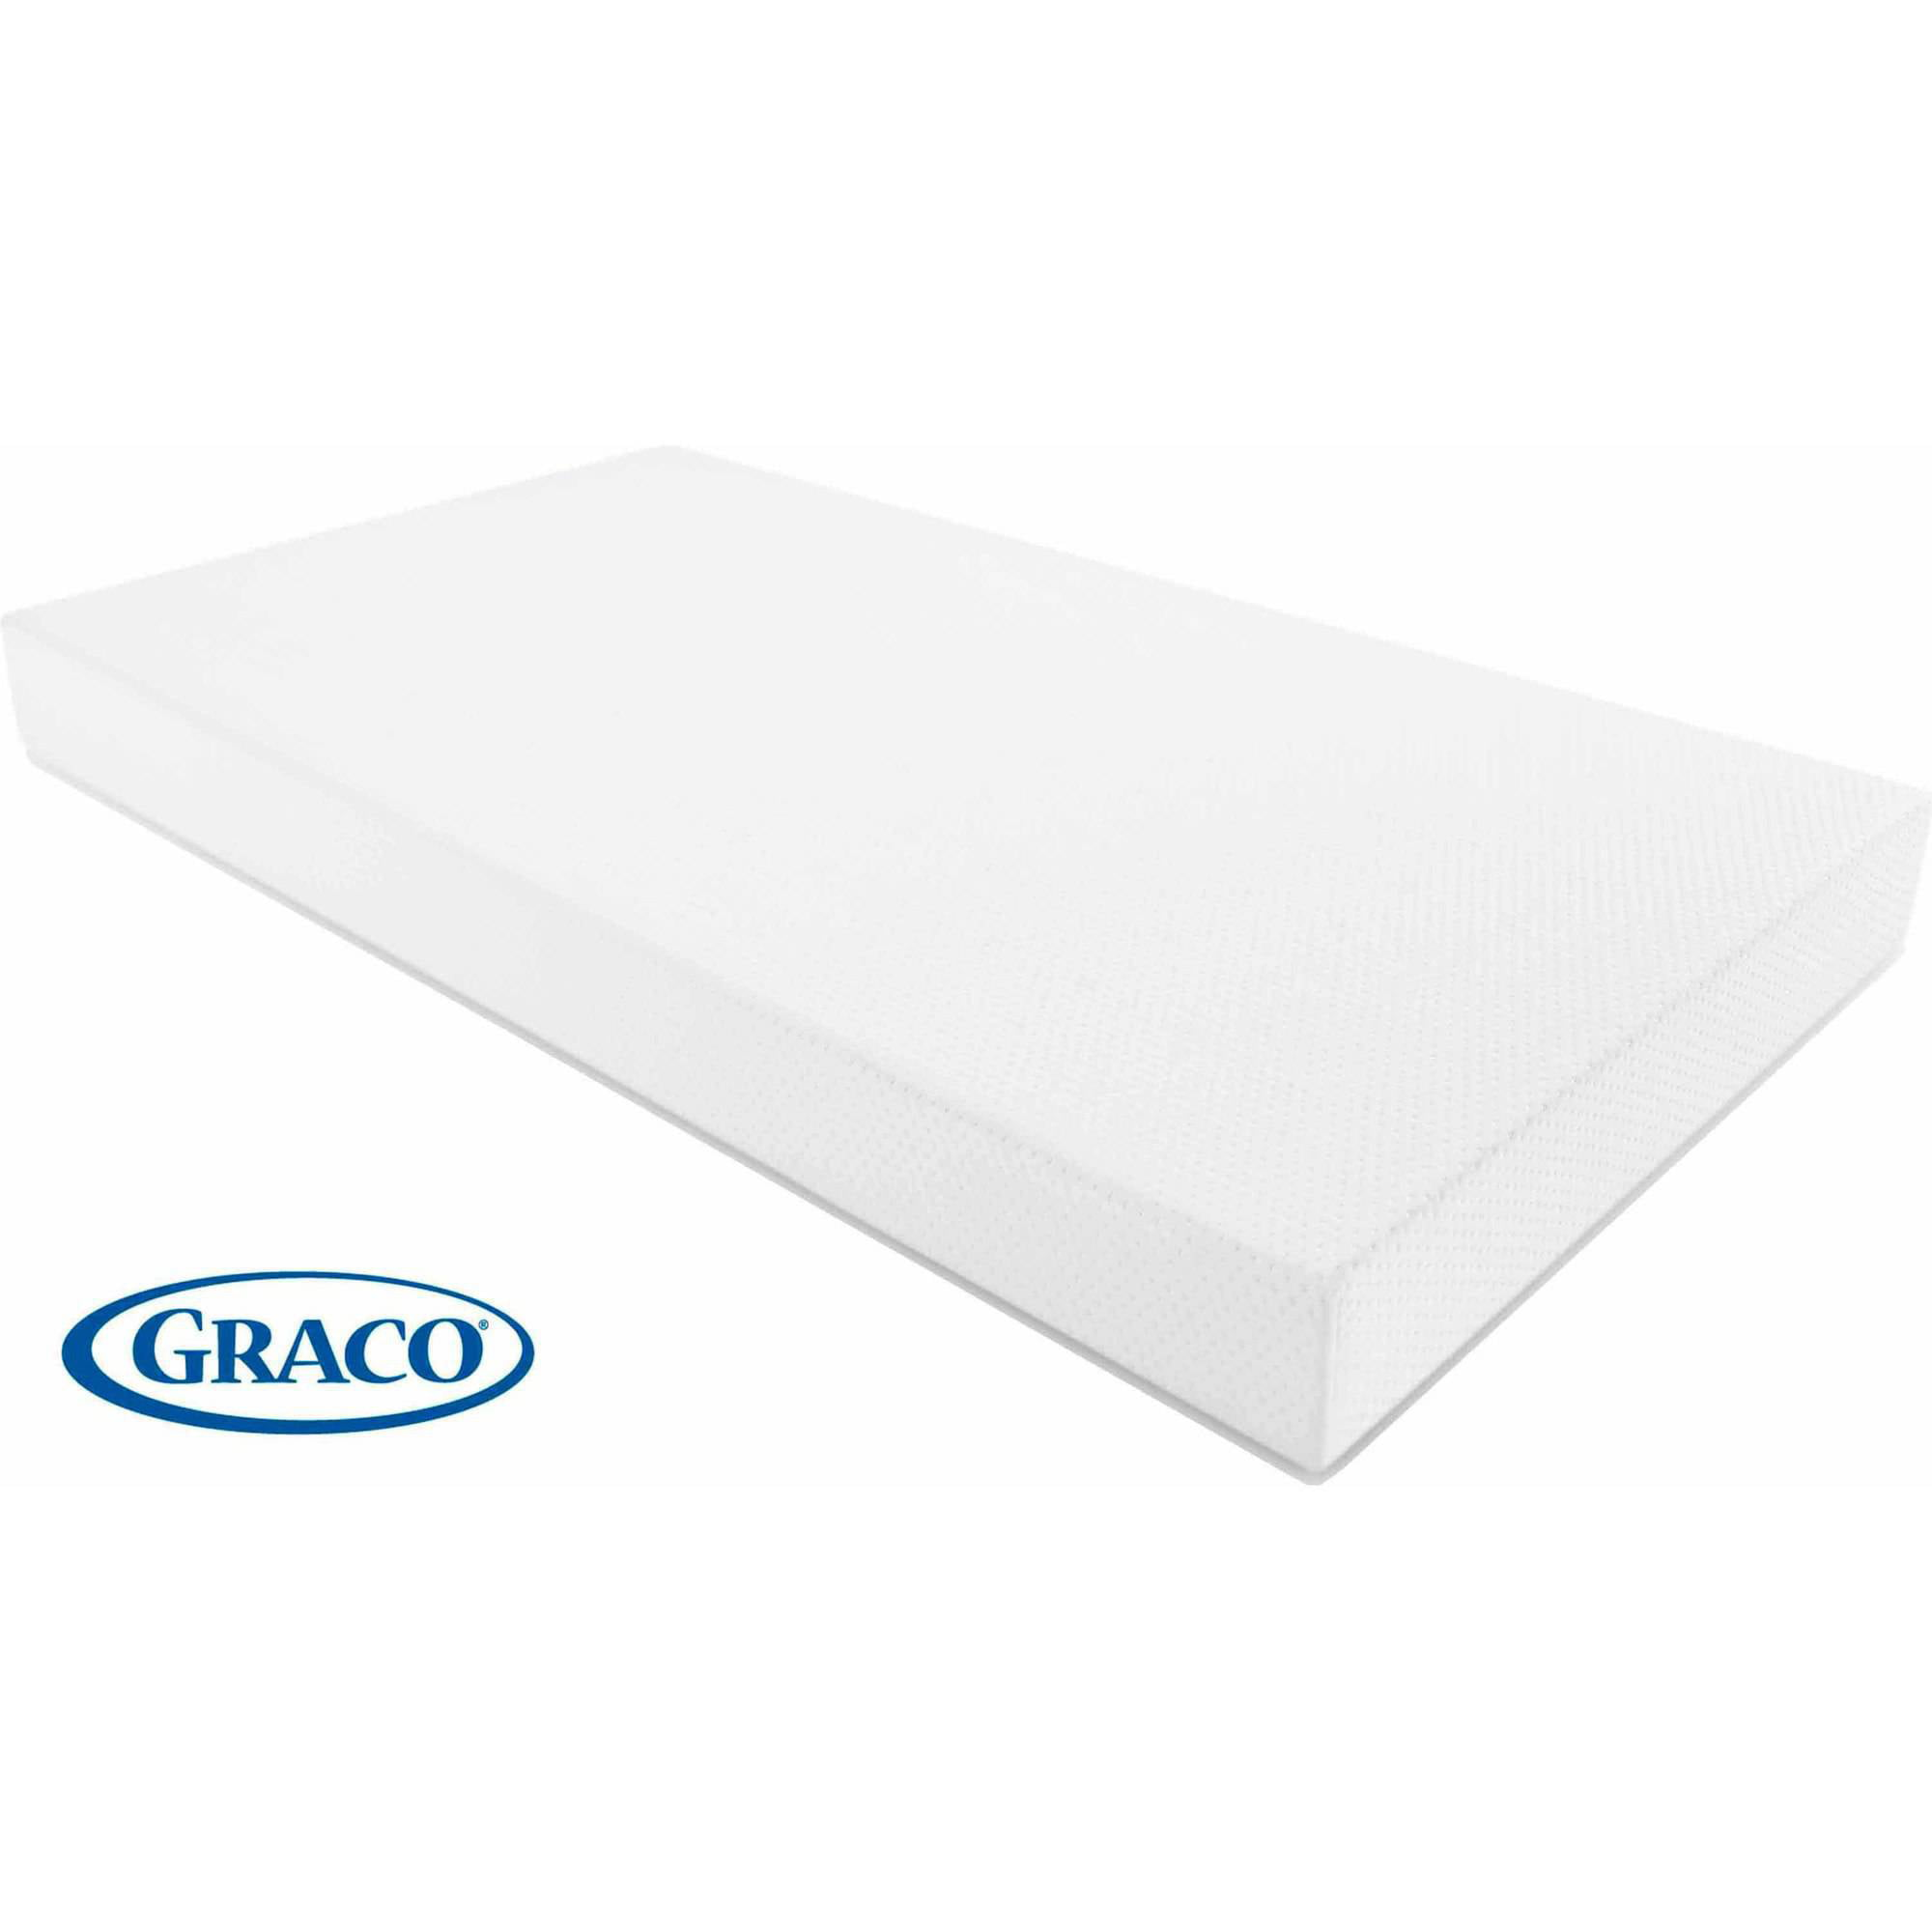 Graco Premium Foam Crib And Toddler Mattress Walmart Com